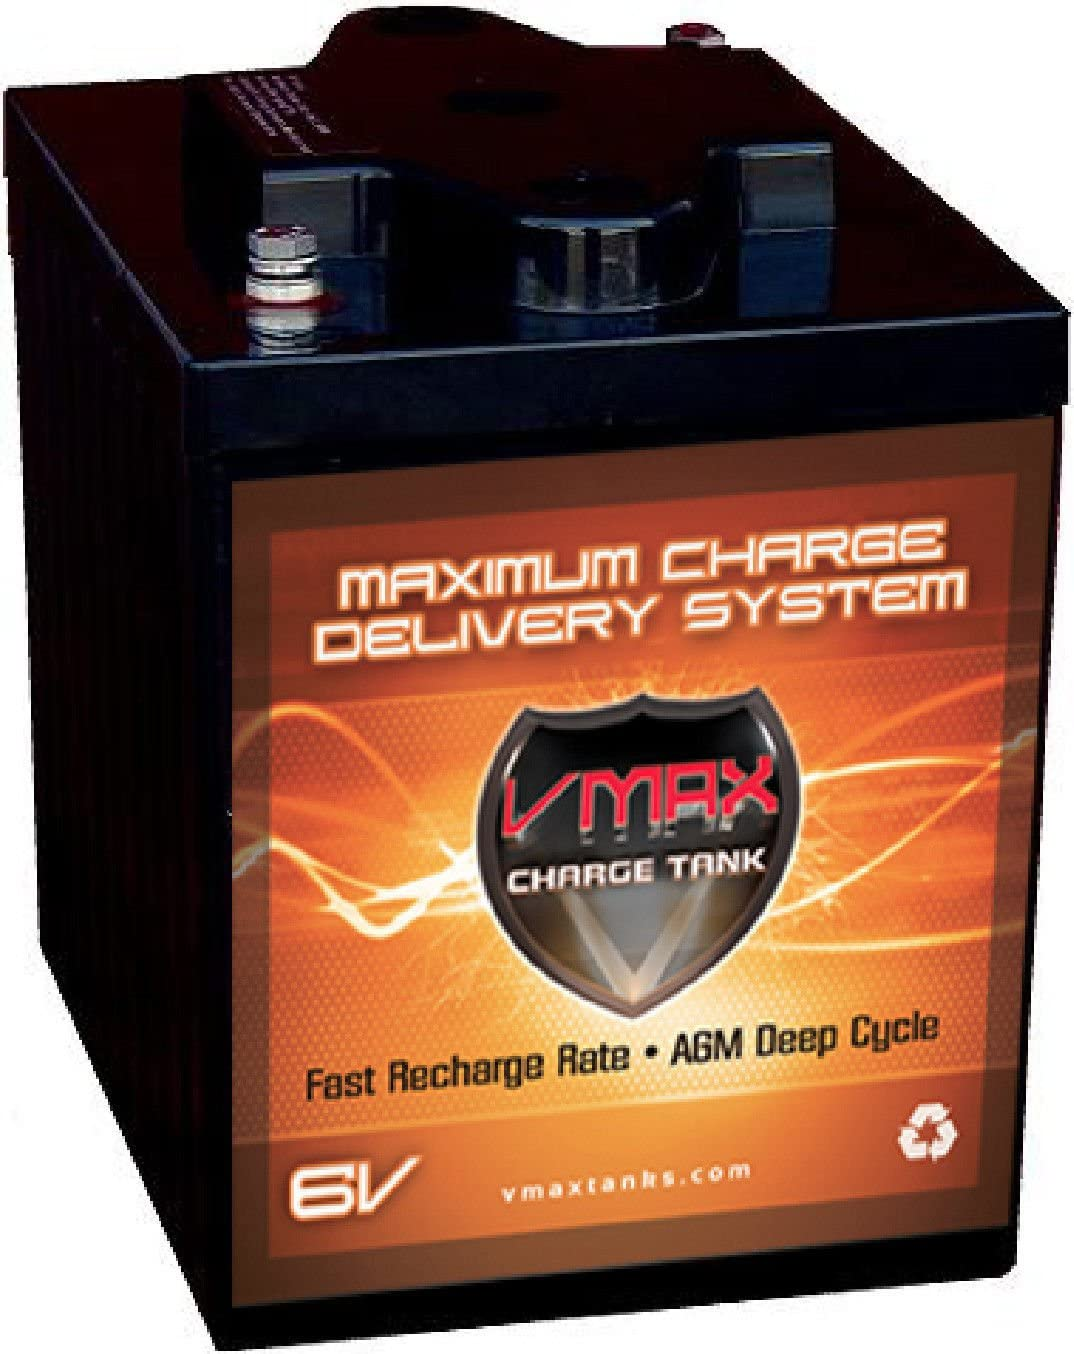 VMAXTANKS 6 Volt AGM RV Battery